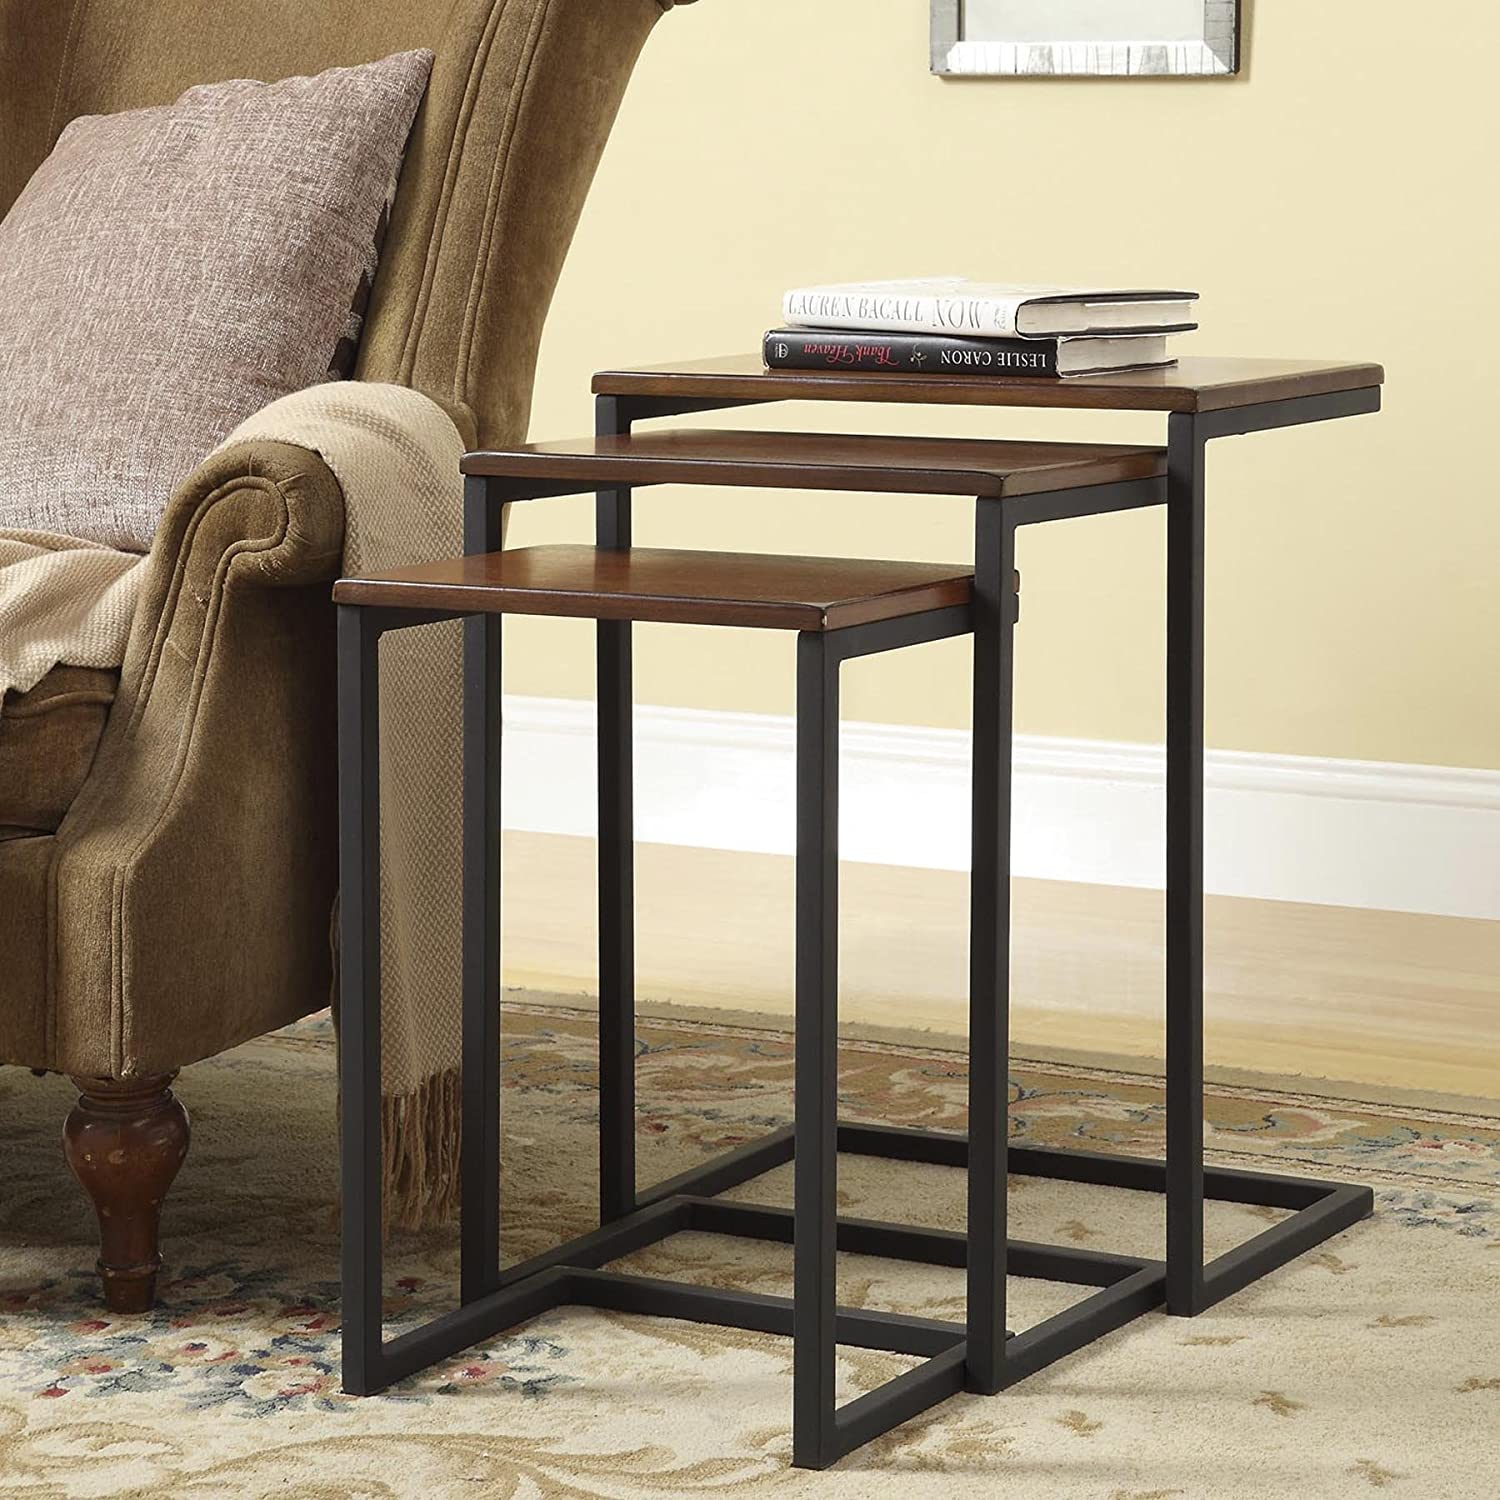 Carolina Chair and Table Madison Nesting Table, Set of 3